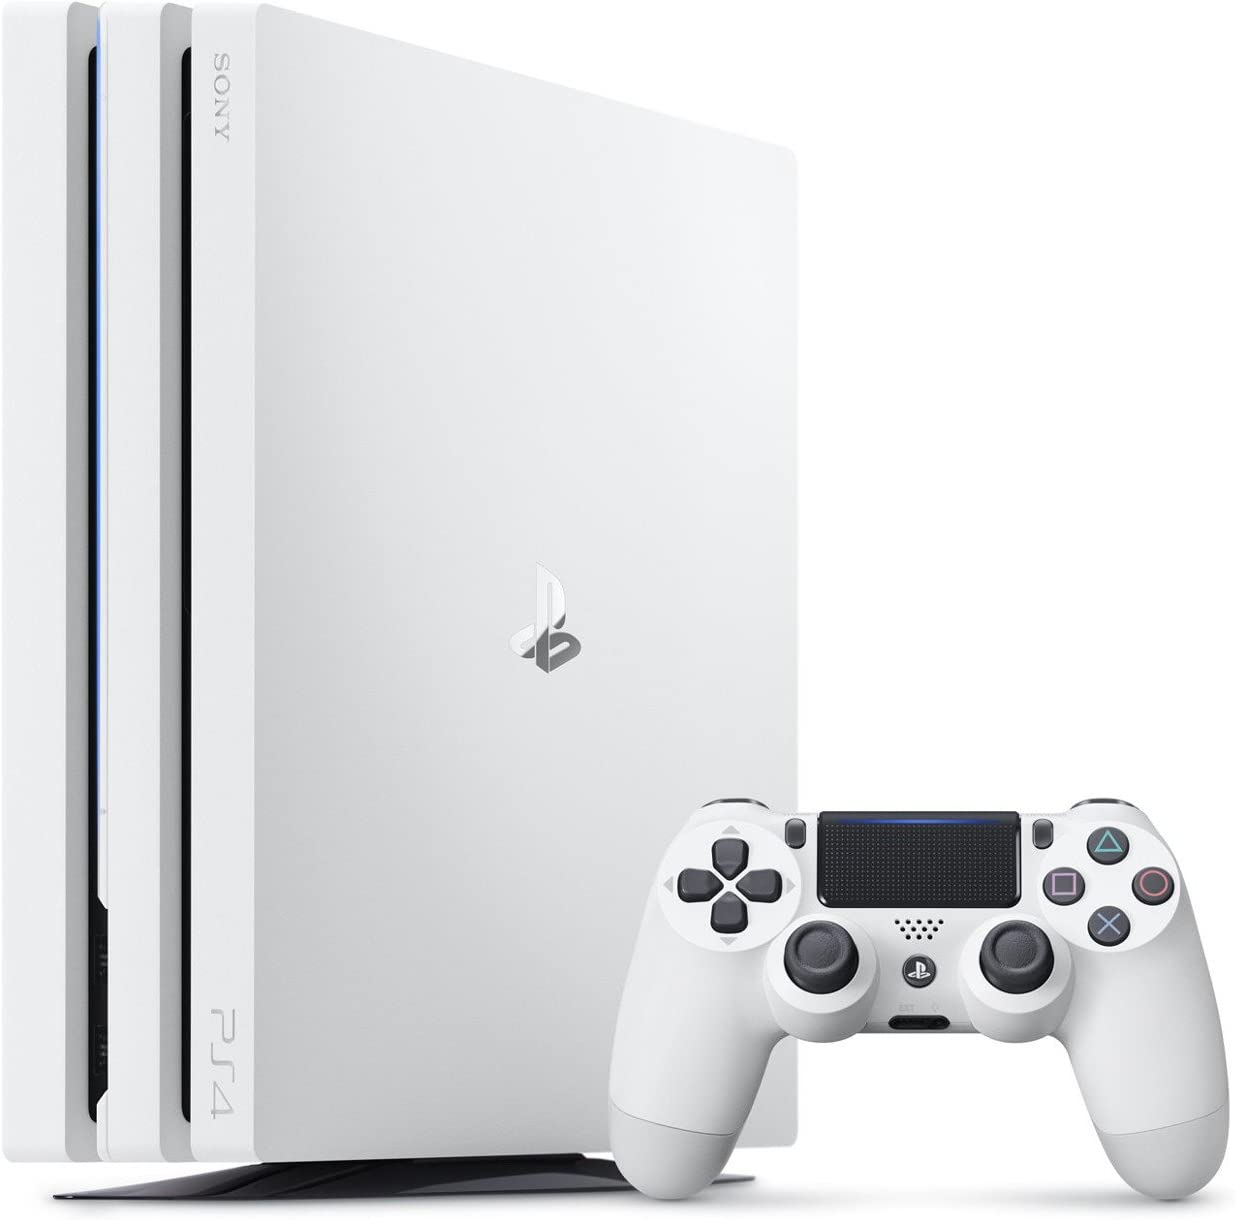 Ps4 Pro 1tb White: Amazon.es: Videojuegos